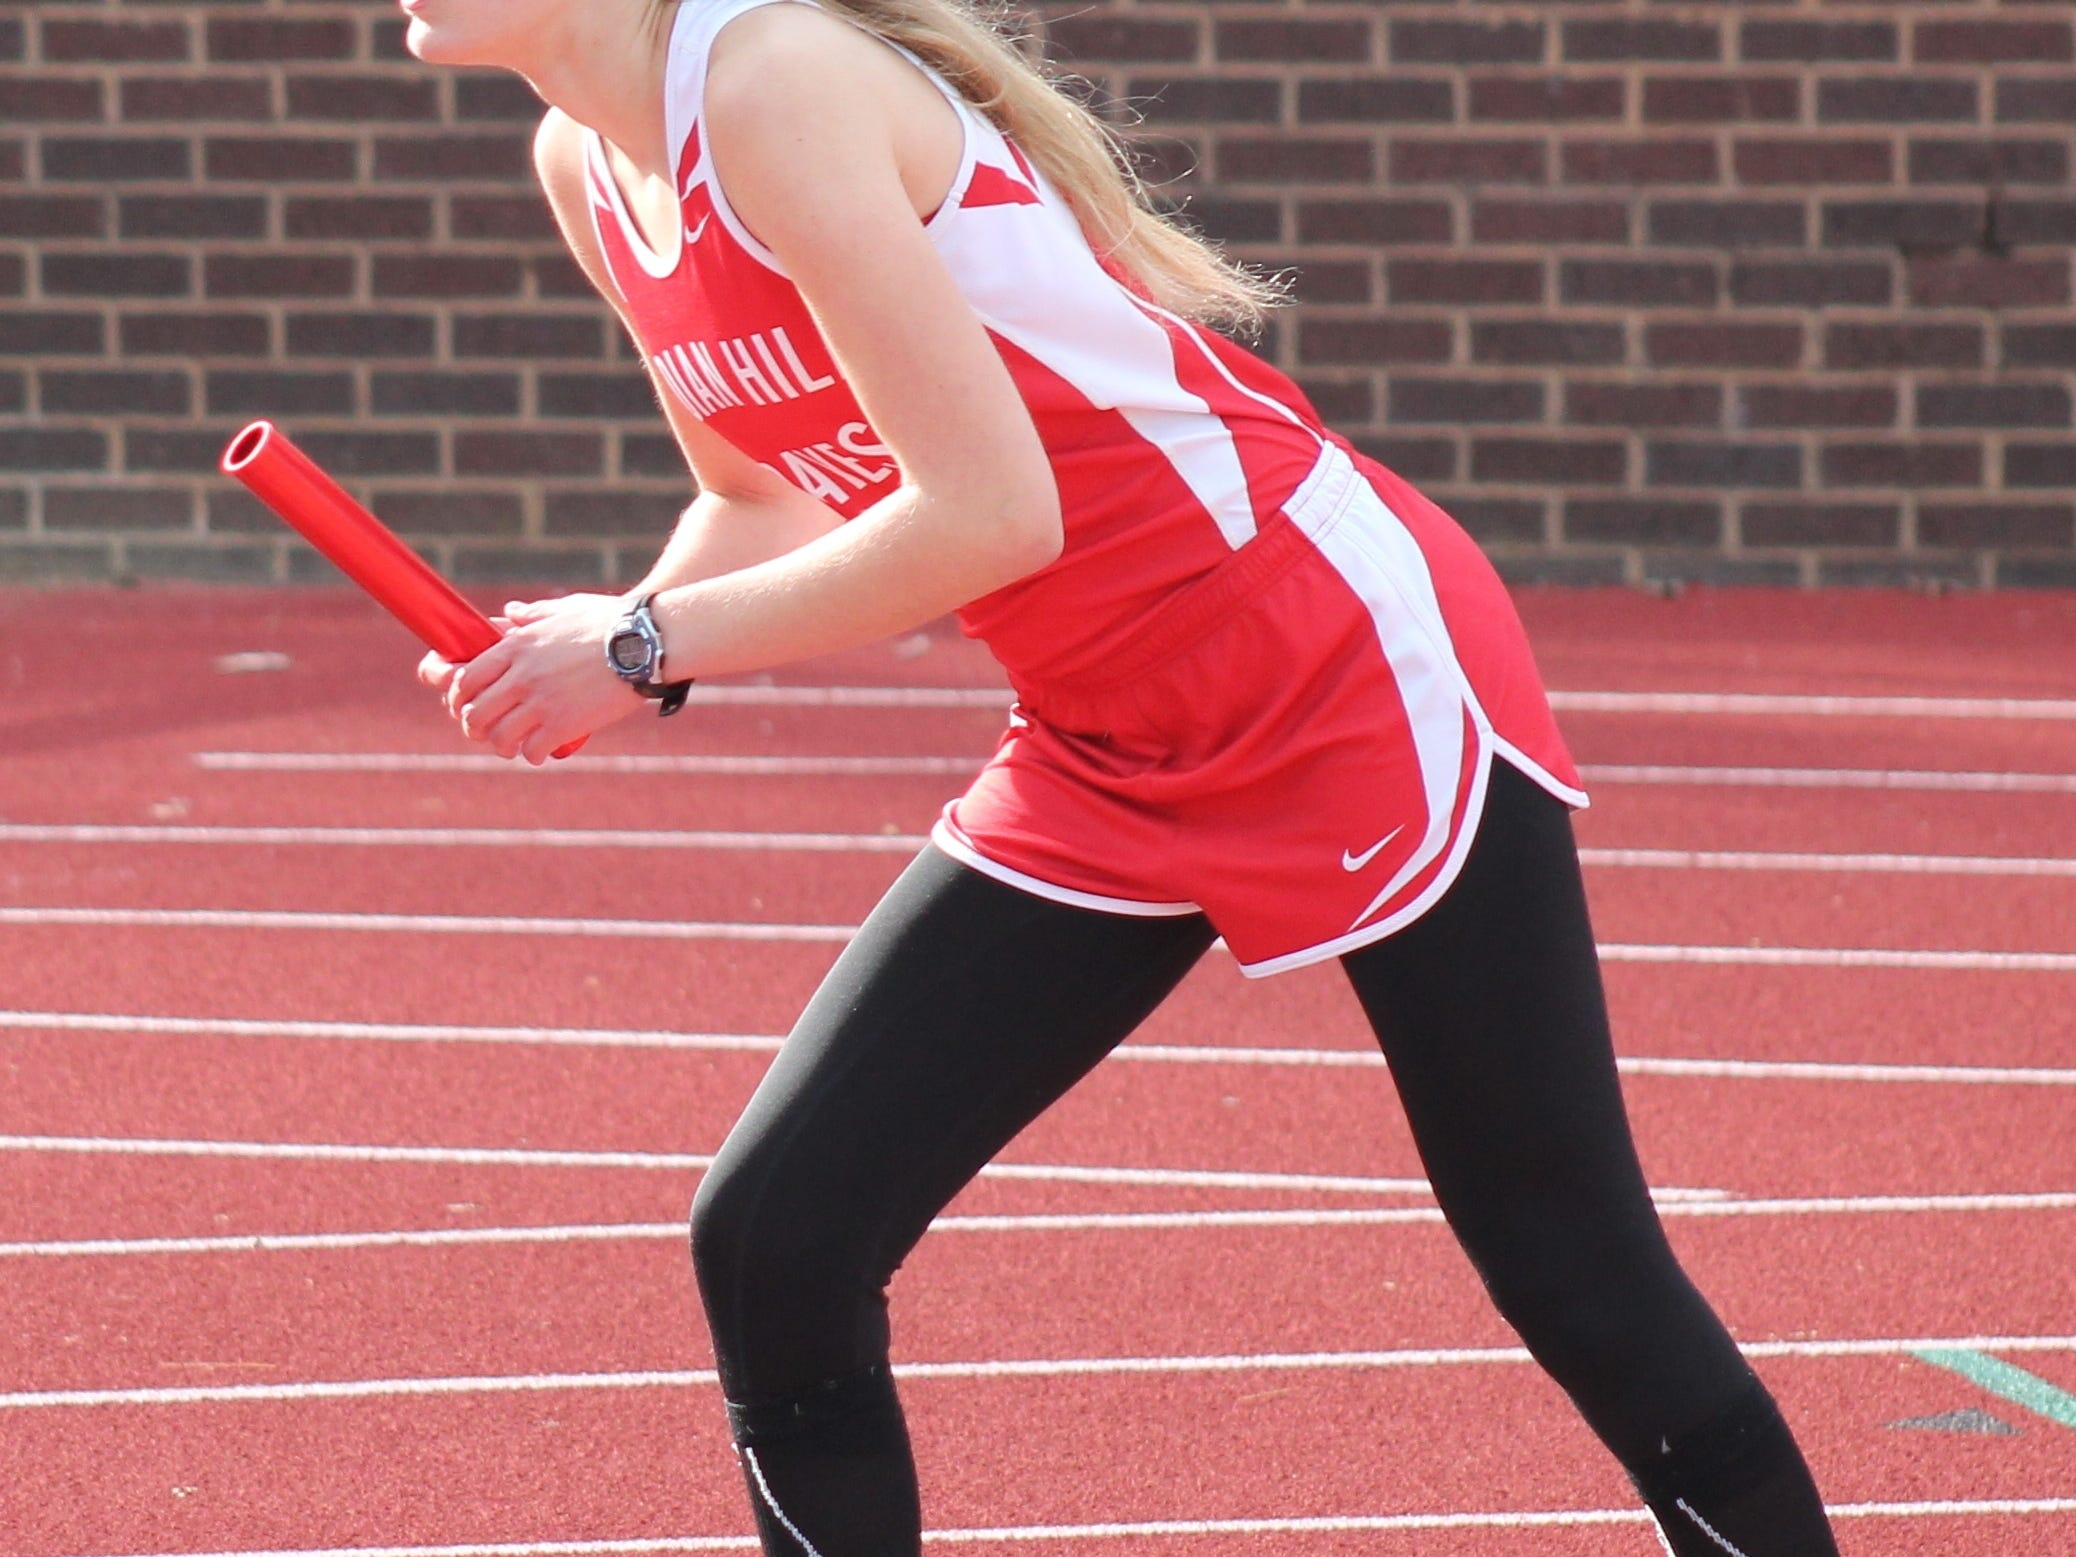 Sabrina Bulas awaits the start of the 4x800 relay for Indian Hill at the CHCA relays last season.